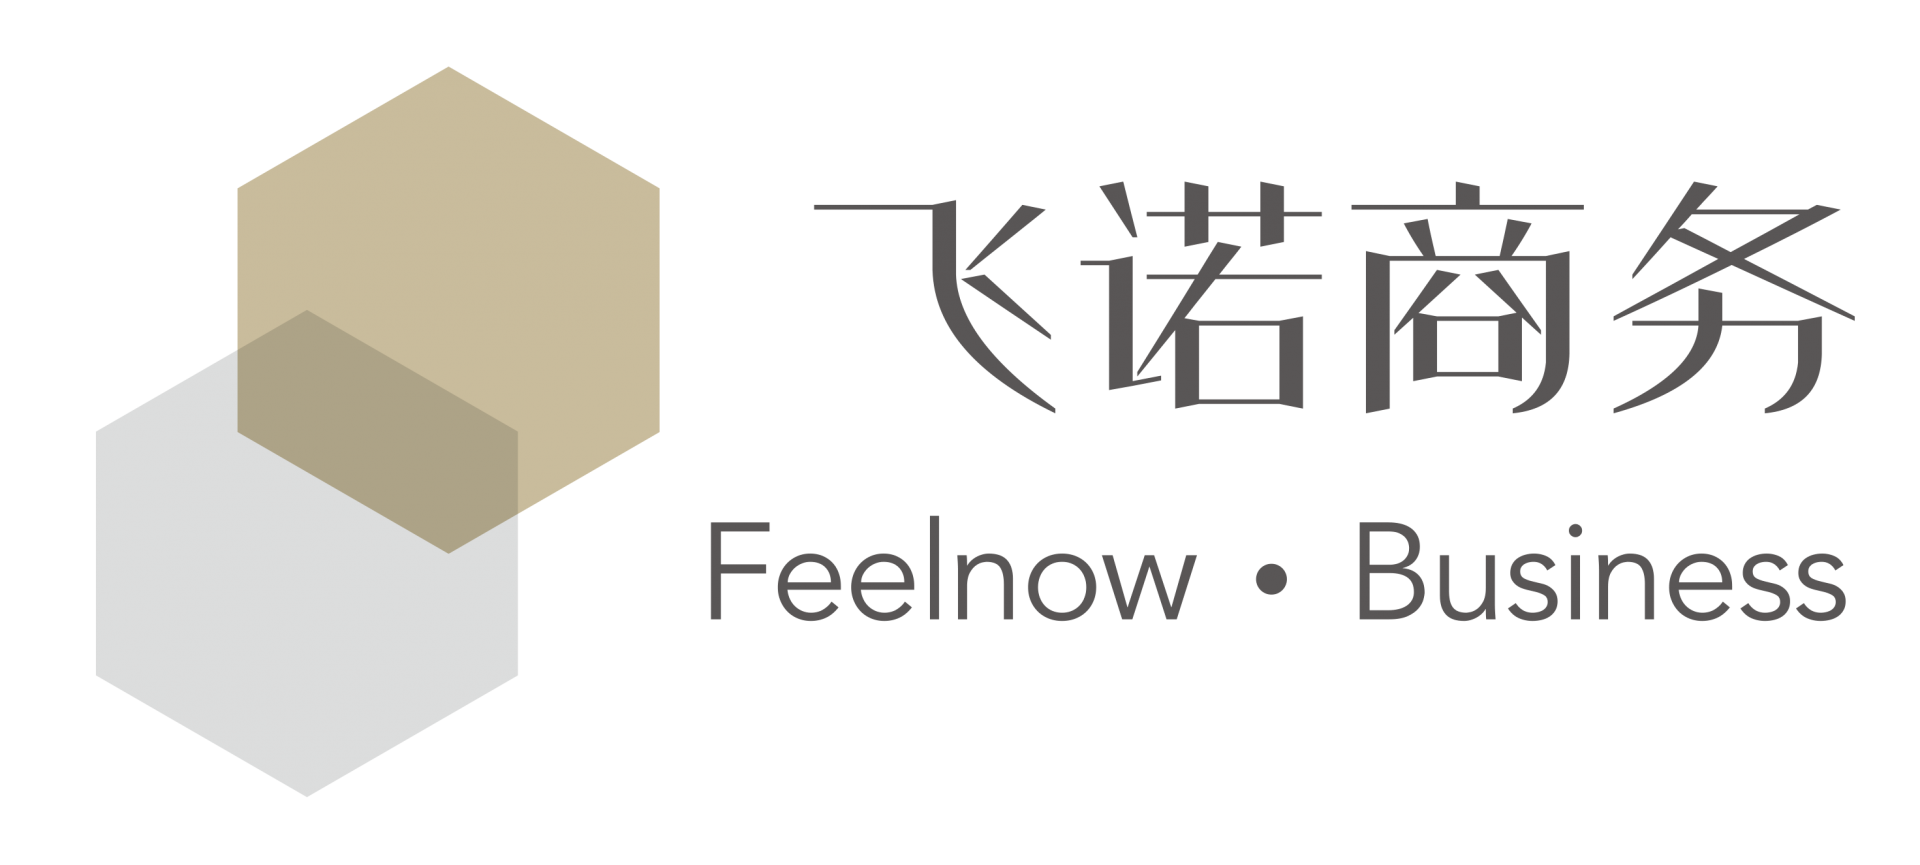 Feelnow-Business